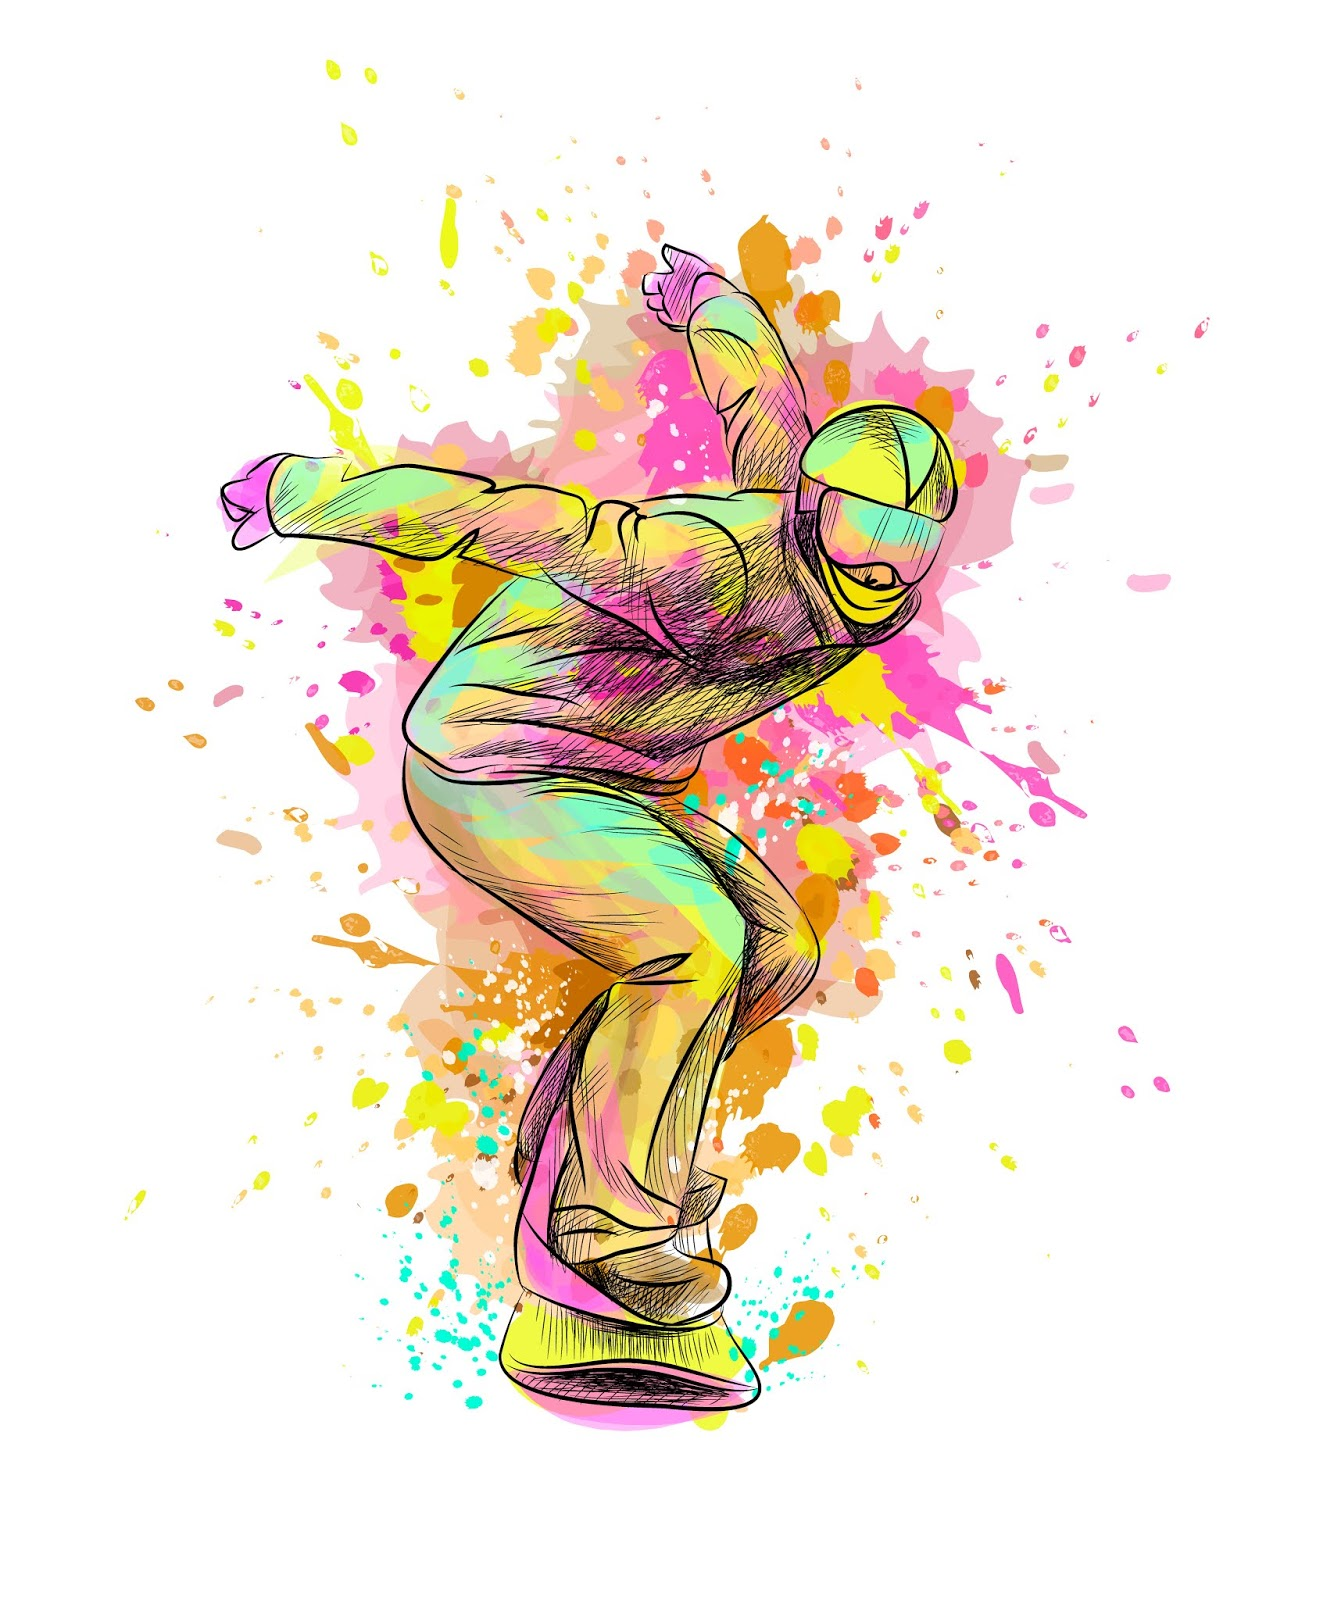 Abstract Snowboarder From Splash Watercolor Hand Drawn Sketch Vector Illustration Paints Free Download Vector CDR, AI, EPS and PNG Formats